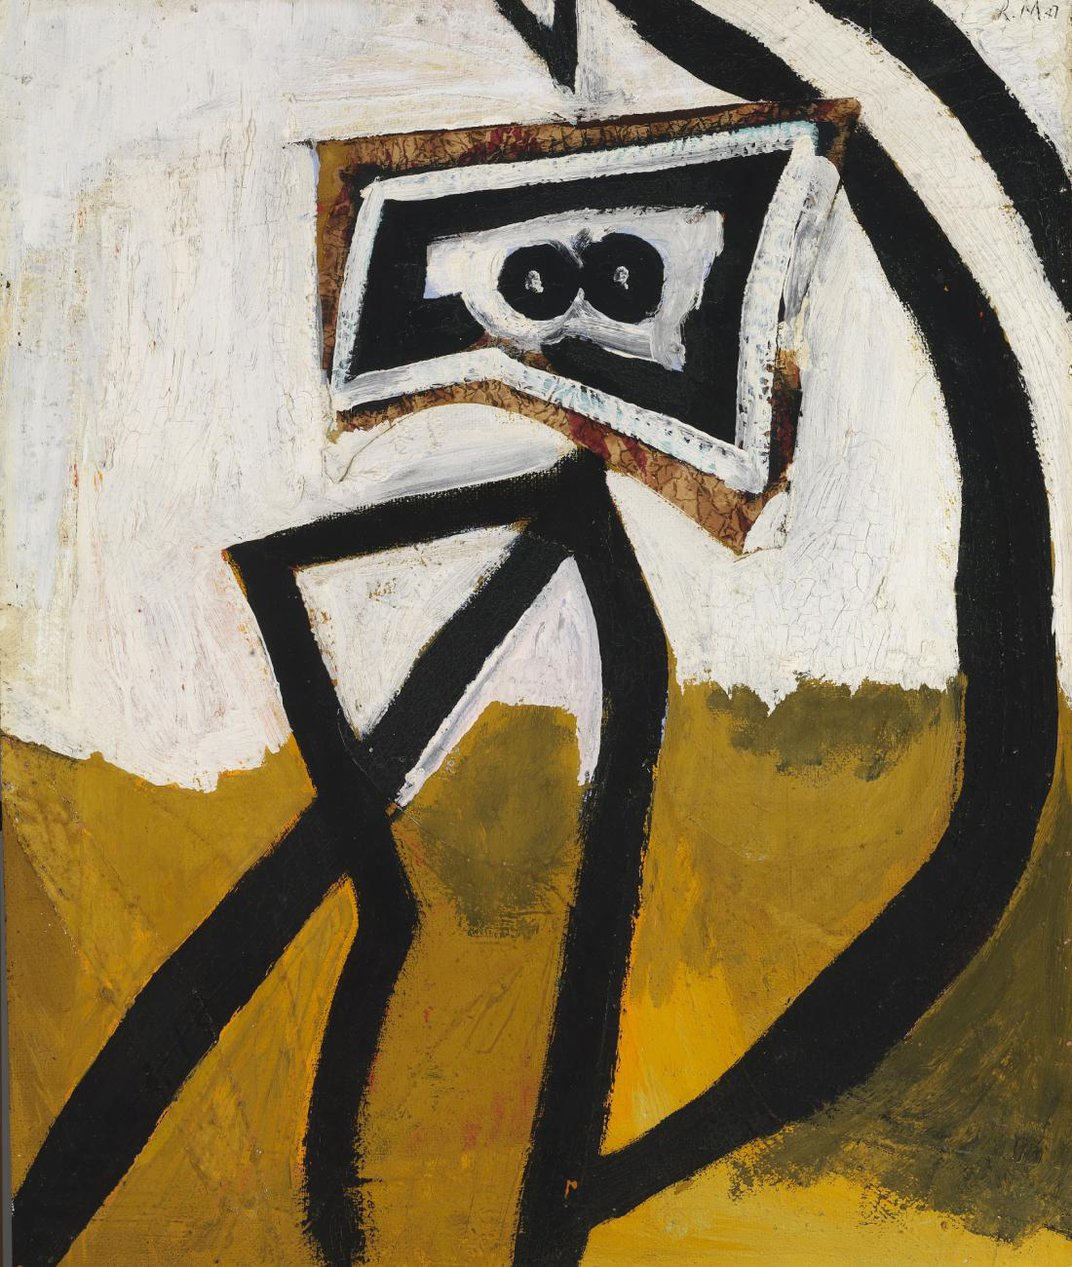 A painting of a figure